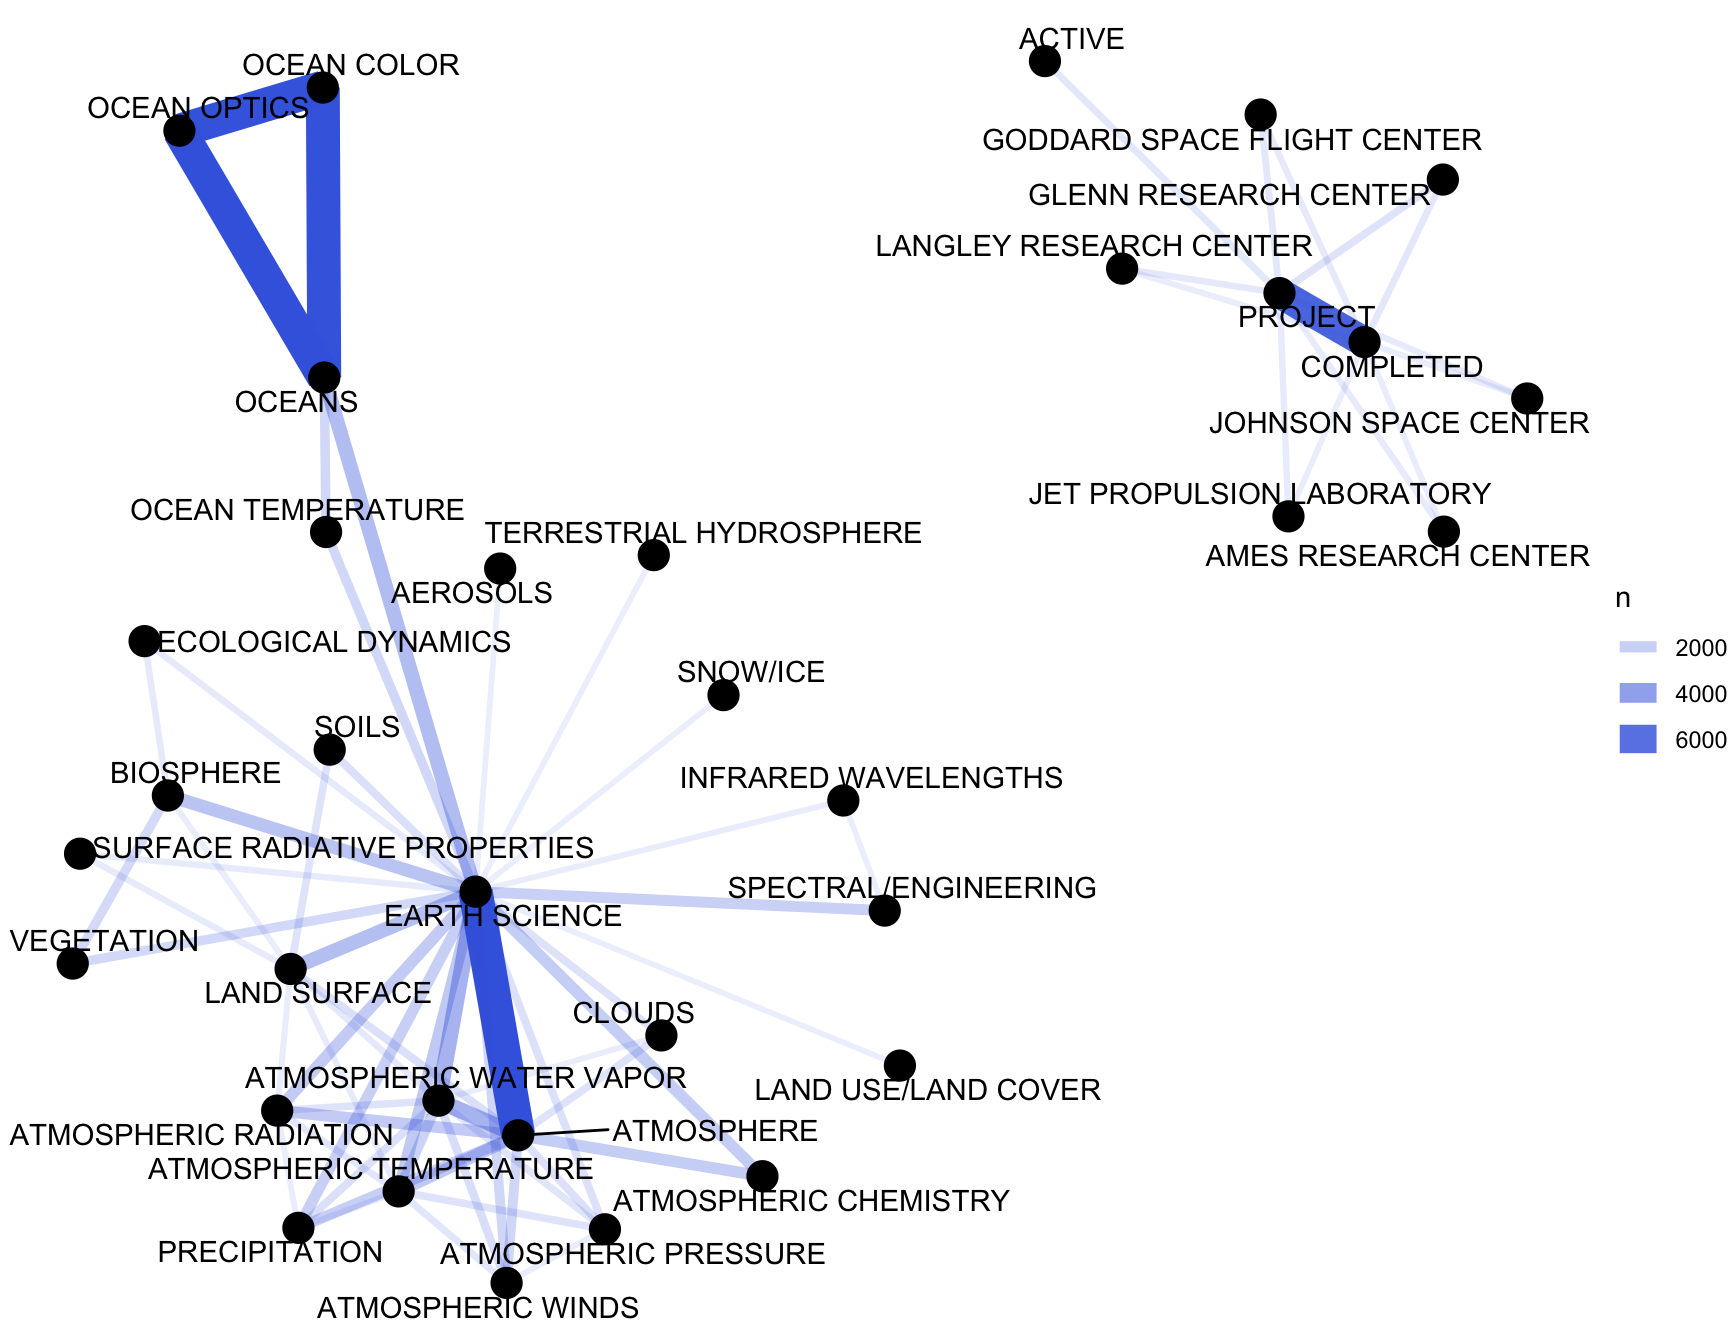 Co-occurrence network in NASA dataset keywords